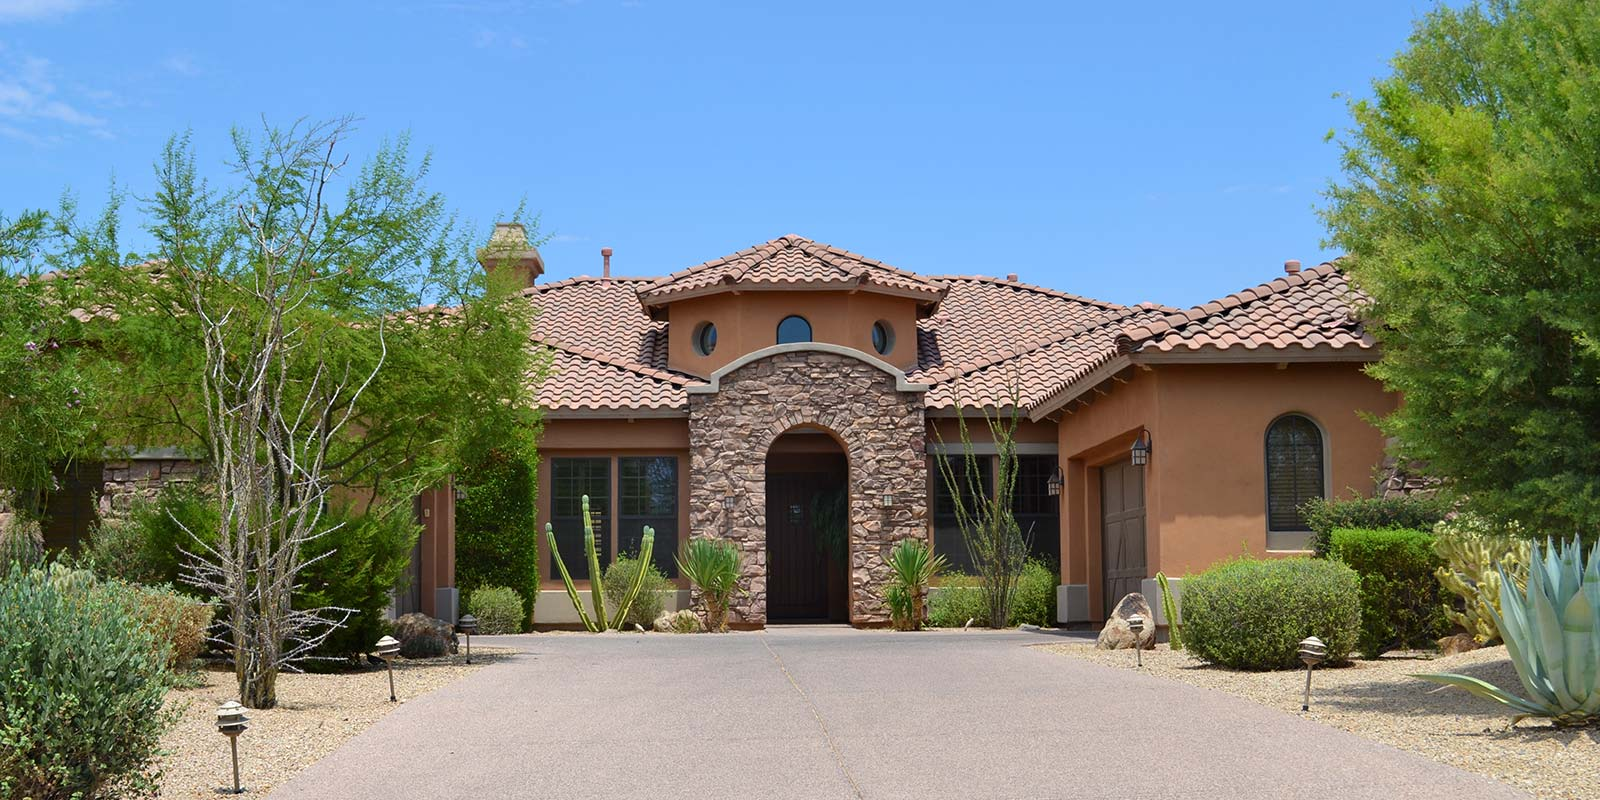 Desert Property For Sale - Desert Homes, Ranches, Land & Southwest